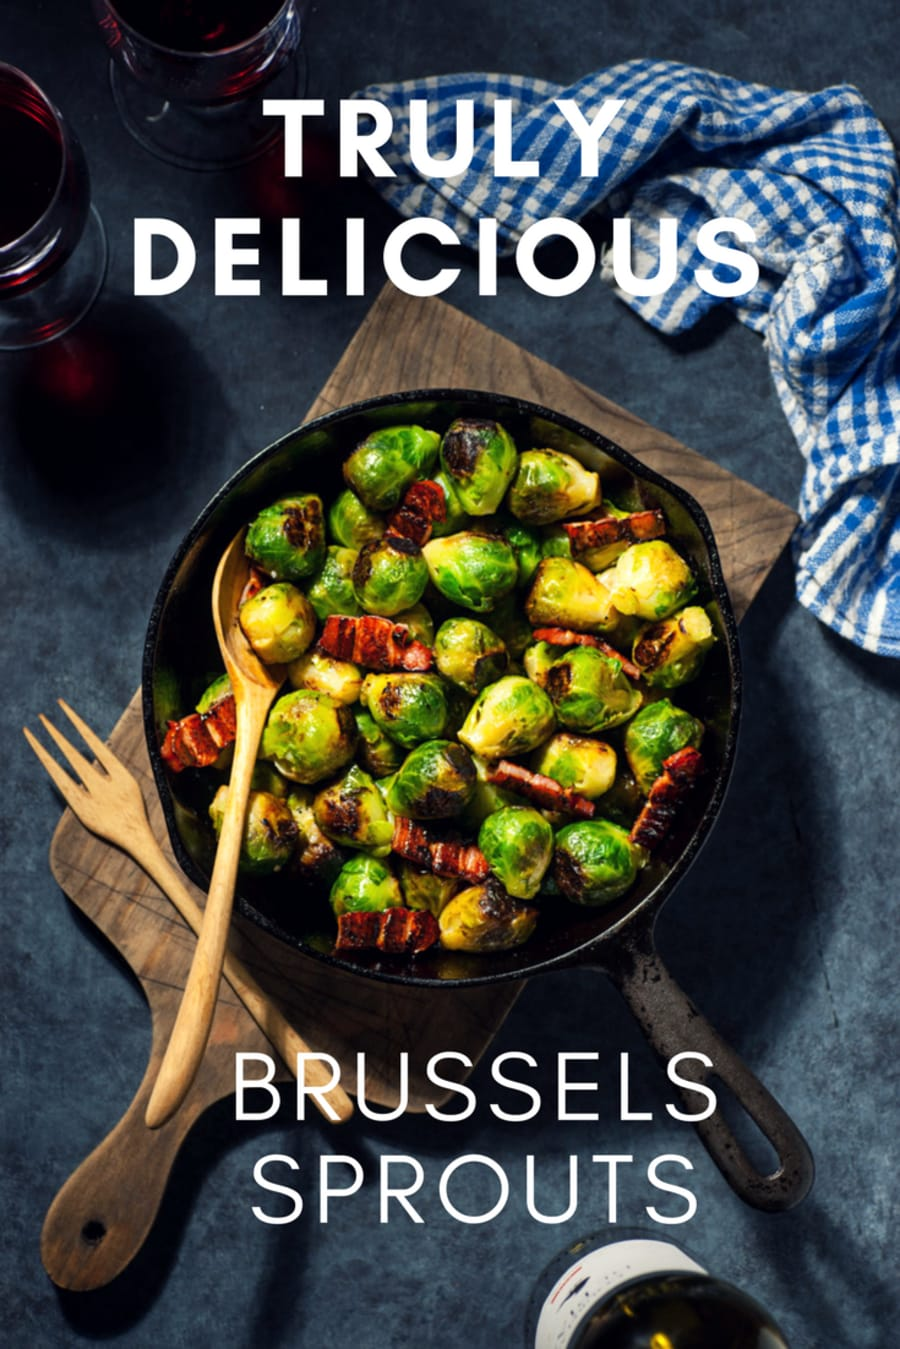 This Is How To Make Brussels Sprouts Taste Really Good